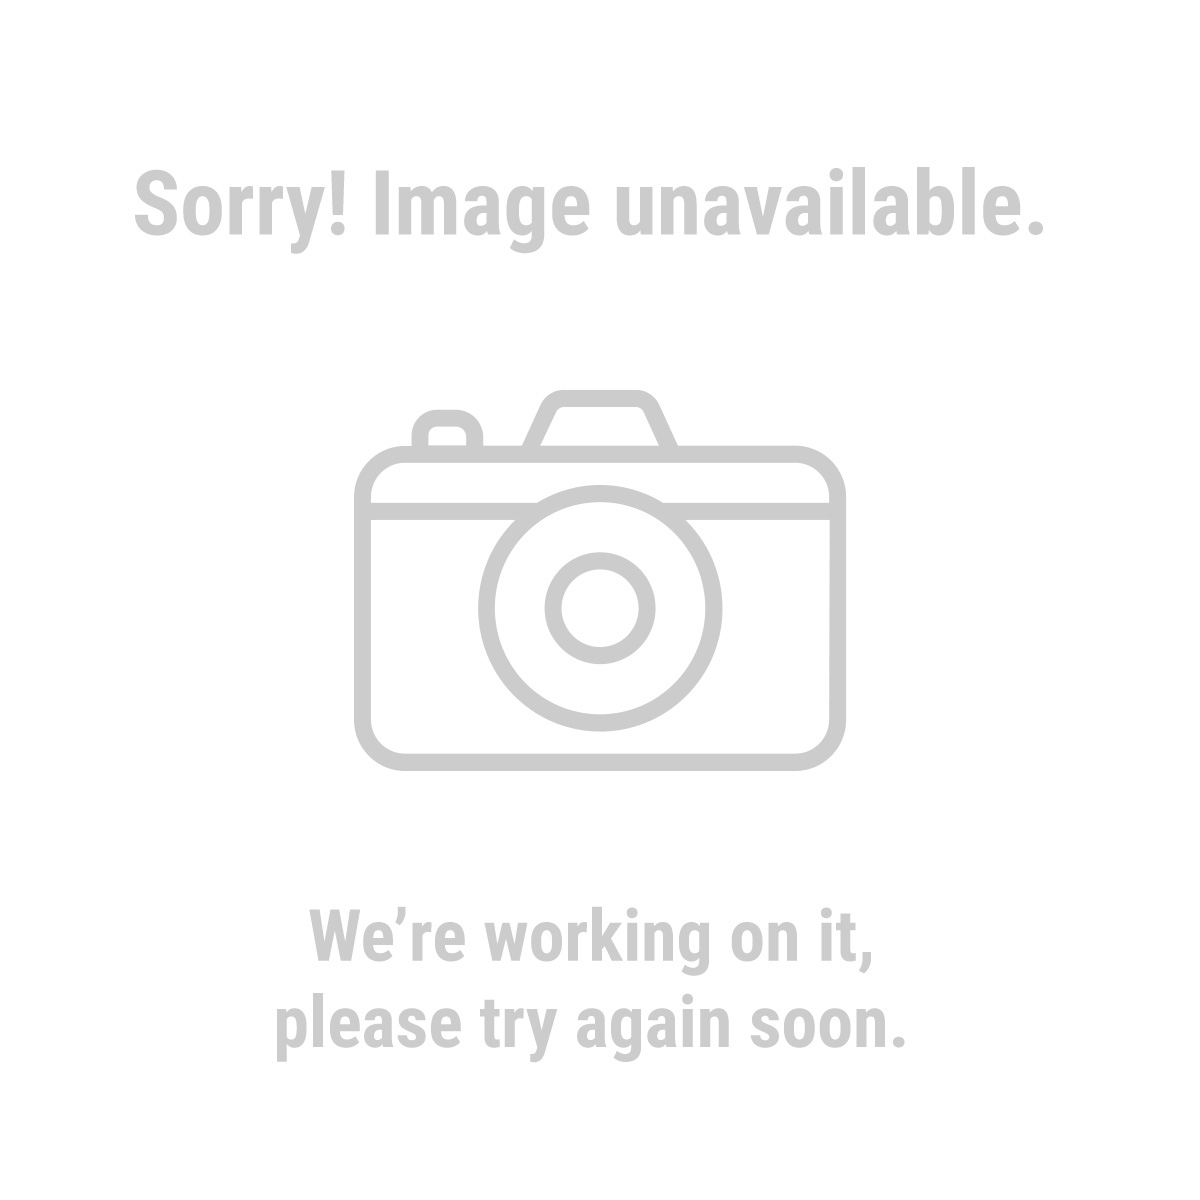 Earthquake® XT 62891 1/2 in. Composite Xtreme Torque Air Impact Wrench